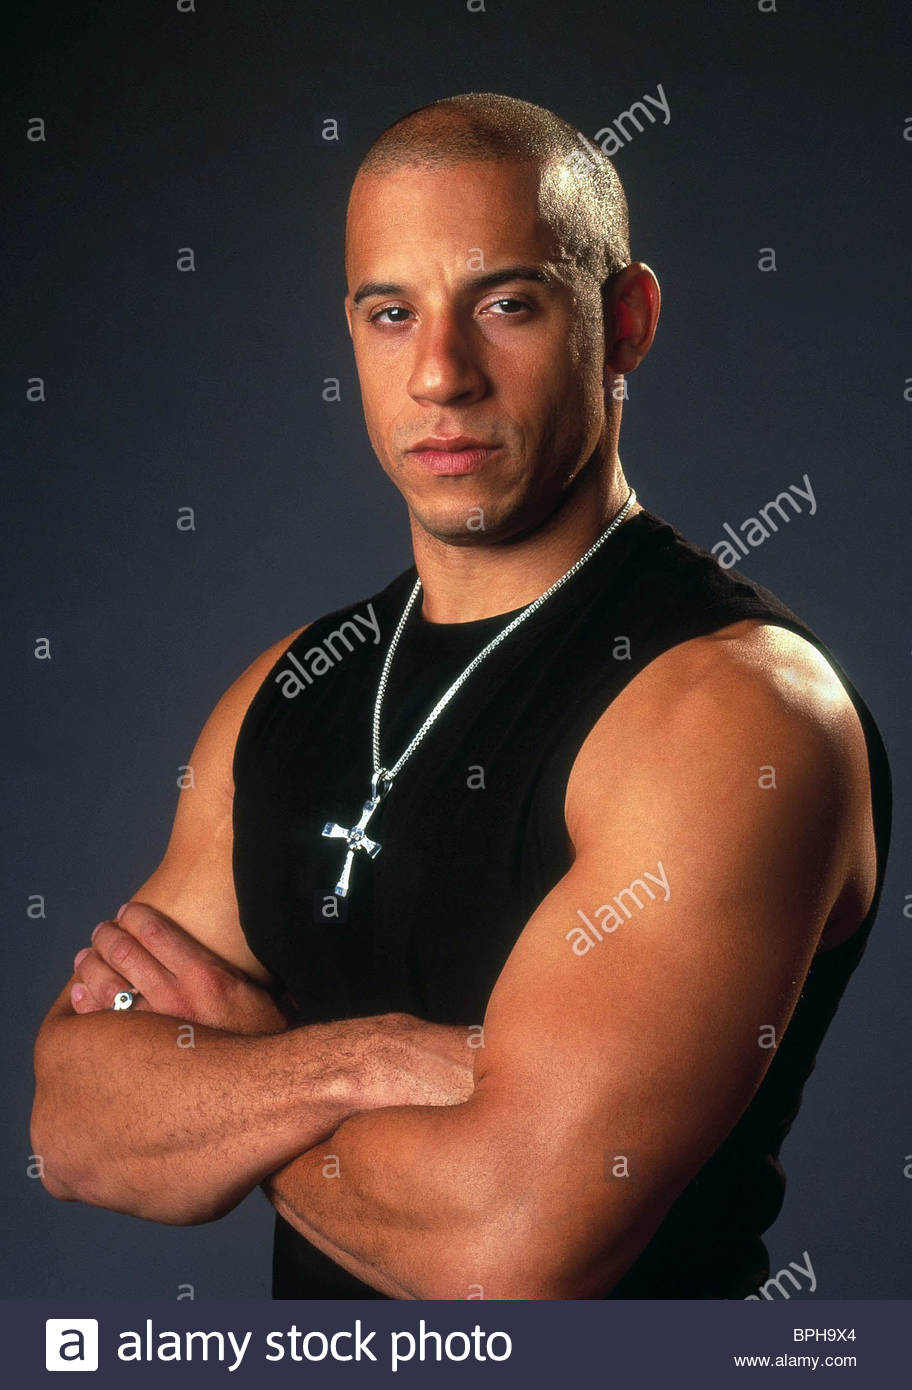 vin diesel the fast and the furious 2001 stock photo 31113772 alamy. Black Bedroom Furniture Sets. Home Design Ideas